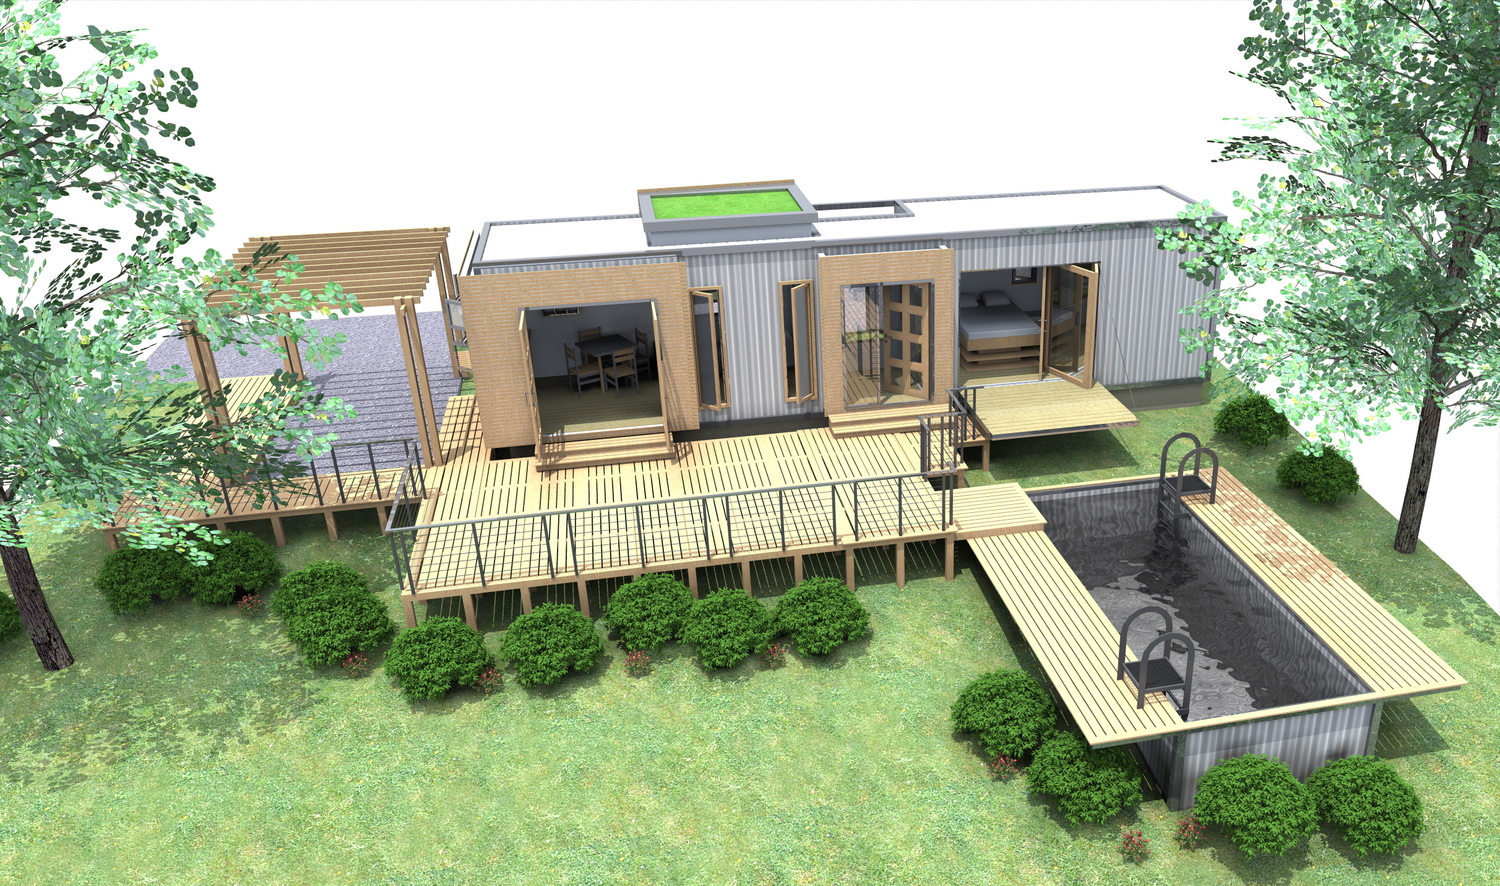 40ft shipping container home eco pig designs sch 1 devon uk - Sea Container Home Designs